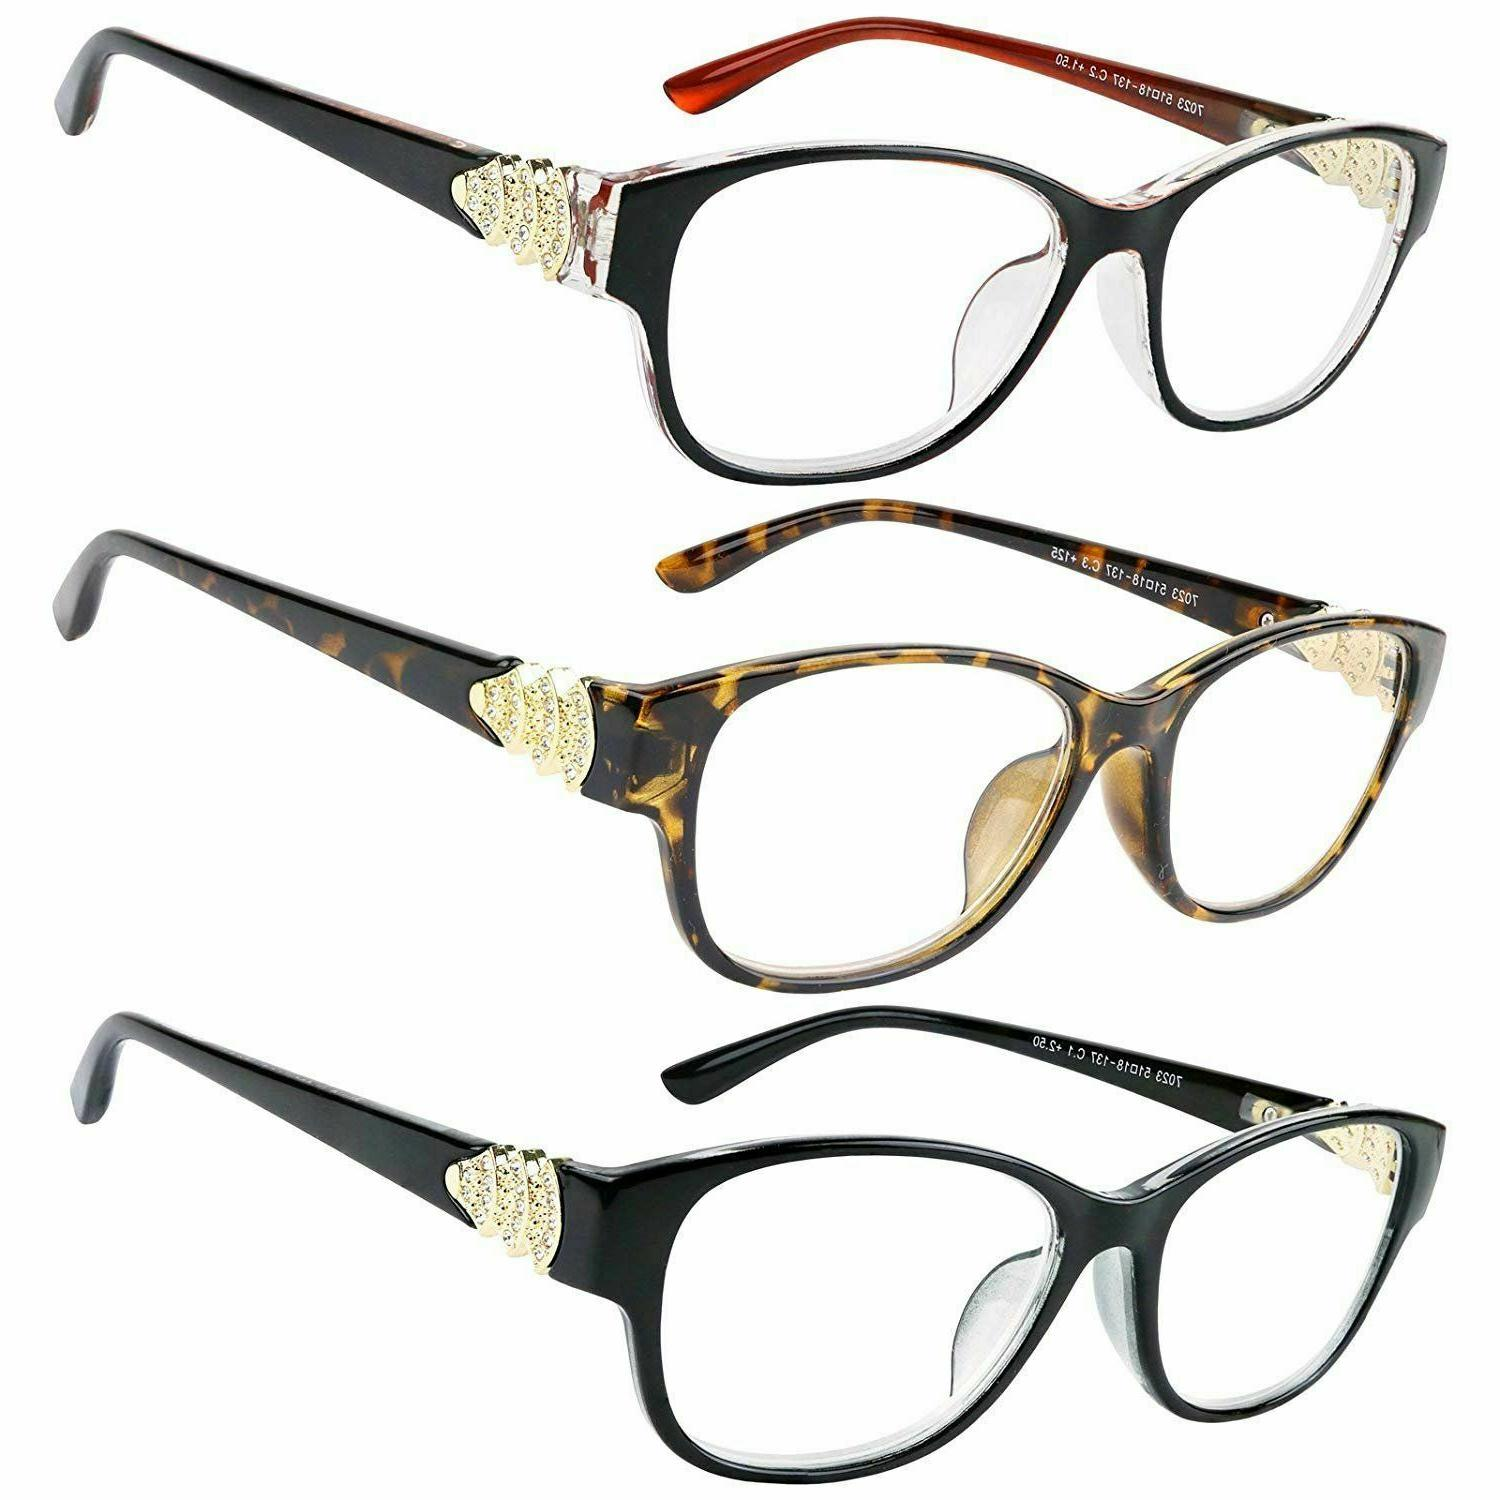 reading glasses 3 pack great value quality